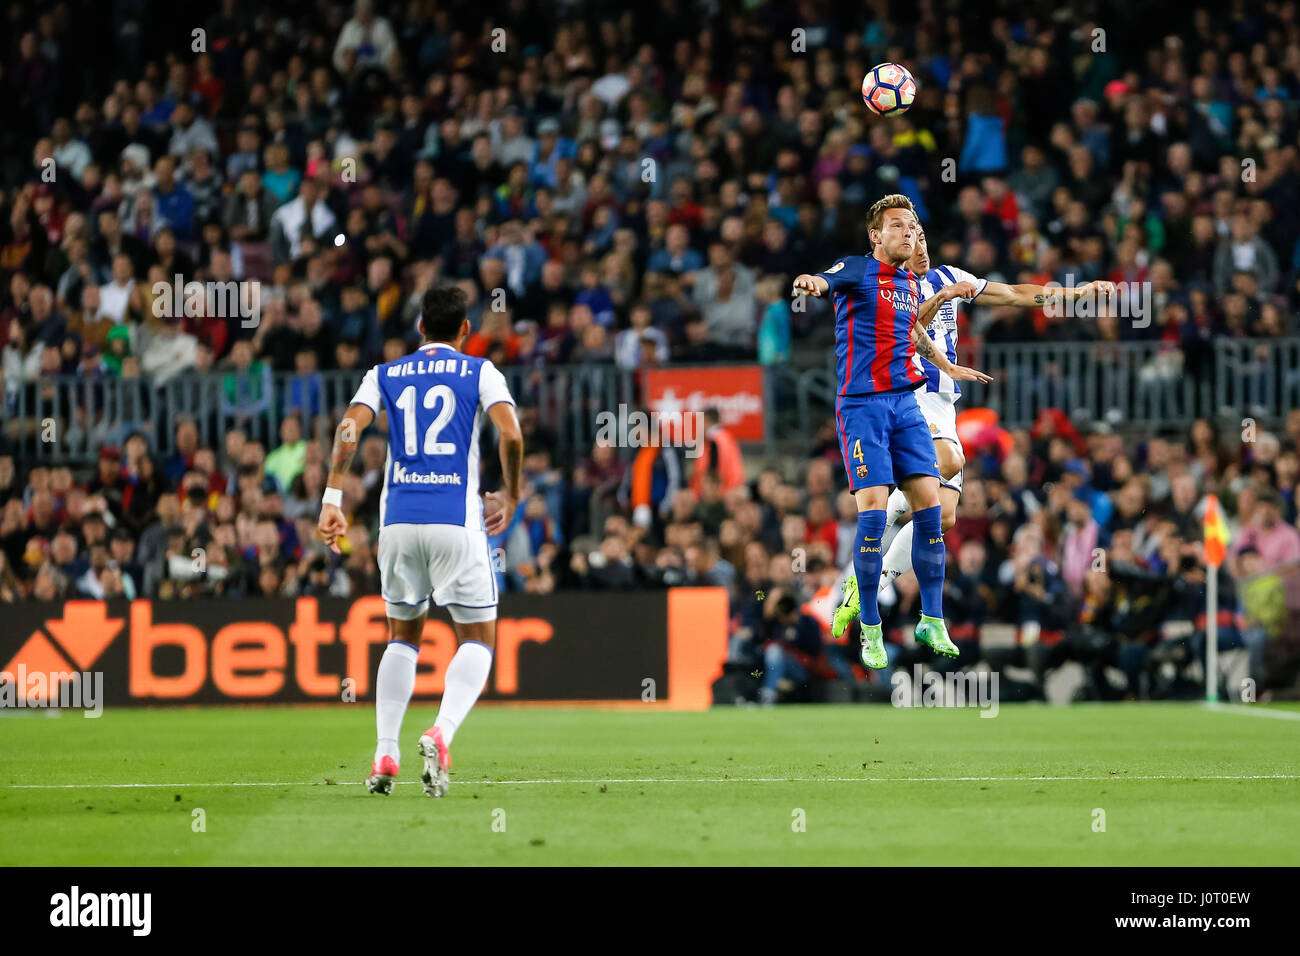 Barcelona, Spain. 15th April, 2017. Ivan Rakitic during the match between FC Barcelona vs Real Sociedad, for the Stock Photo